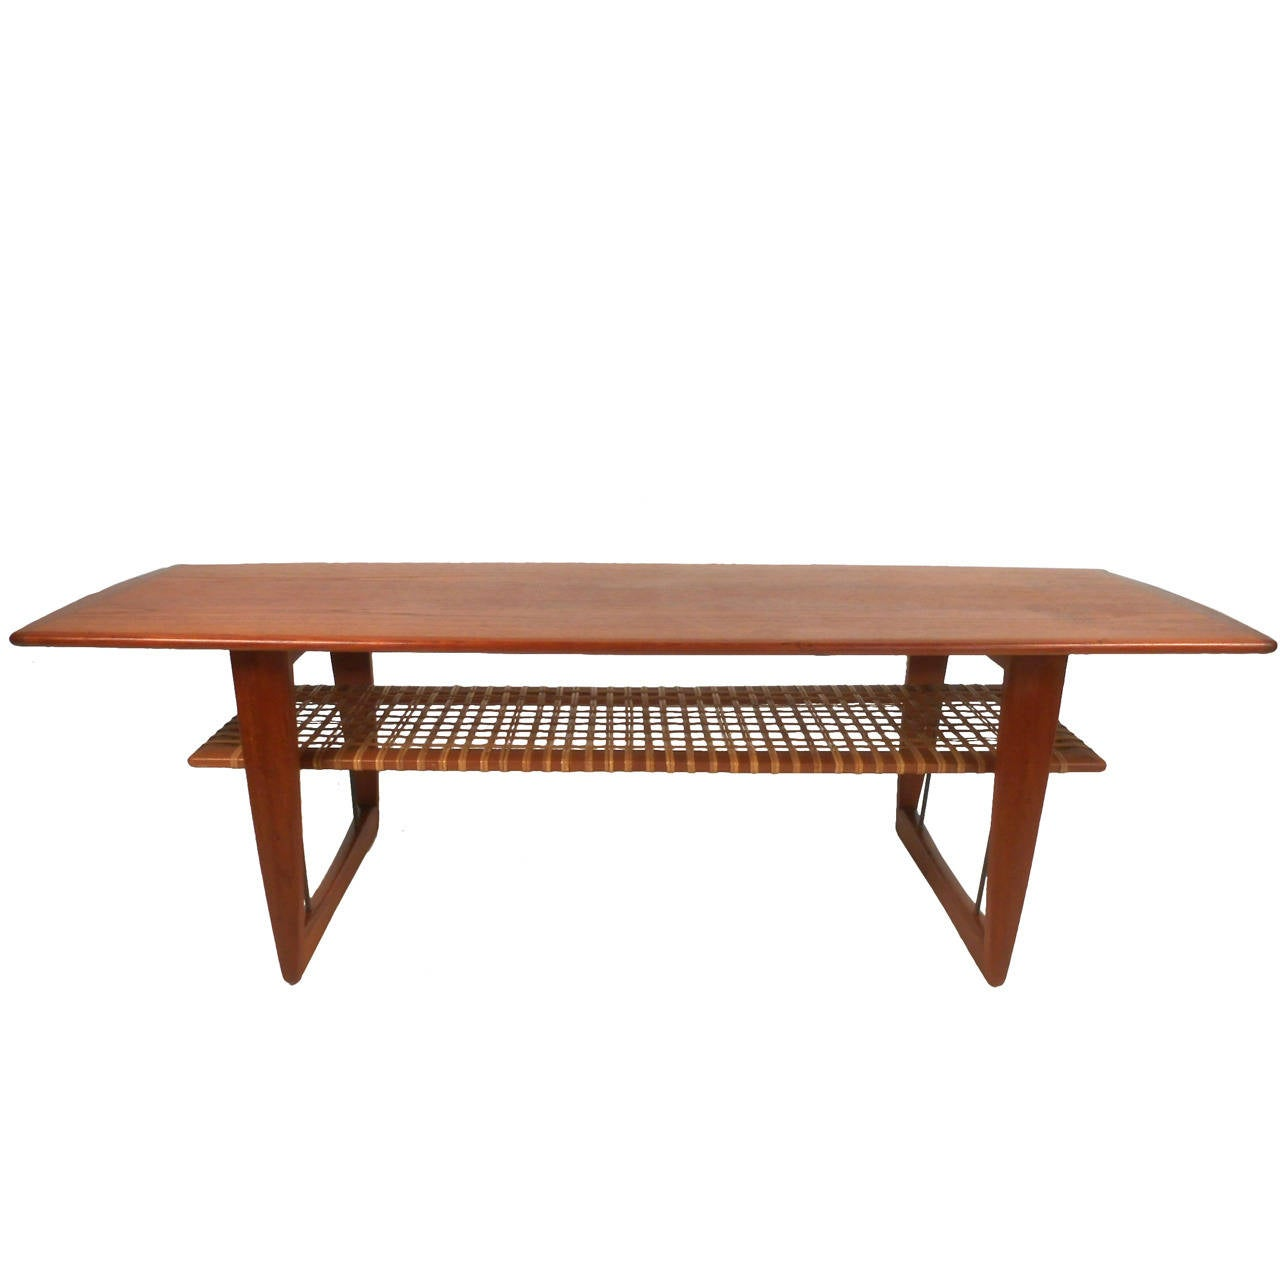 Mid century modern scandinavian coffee table in solid teak by mid century danish teak cane shelf coffee table in the style of peter hvidt geotapseo Gallery